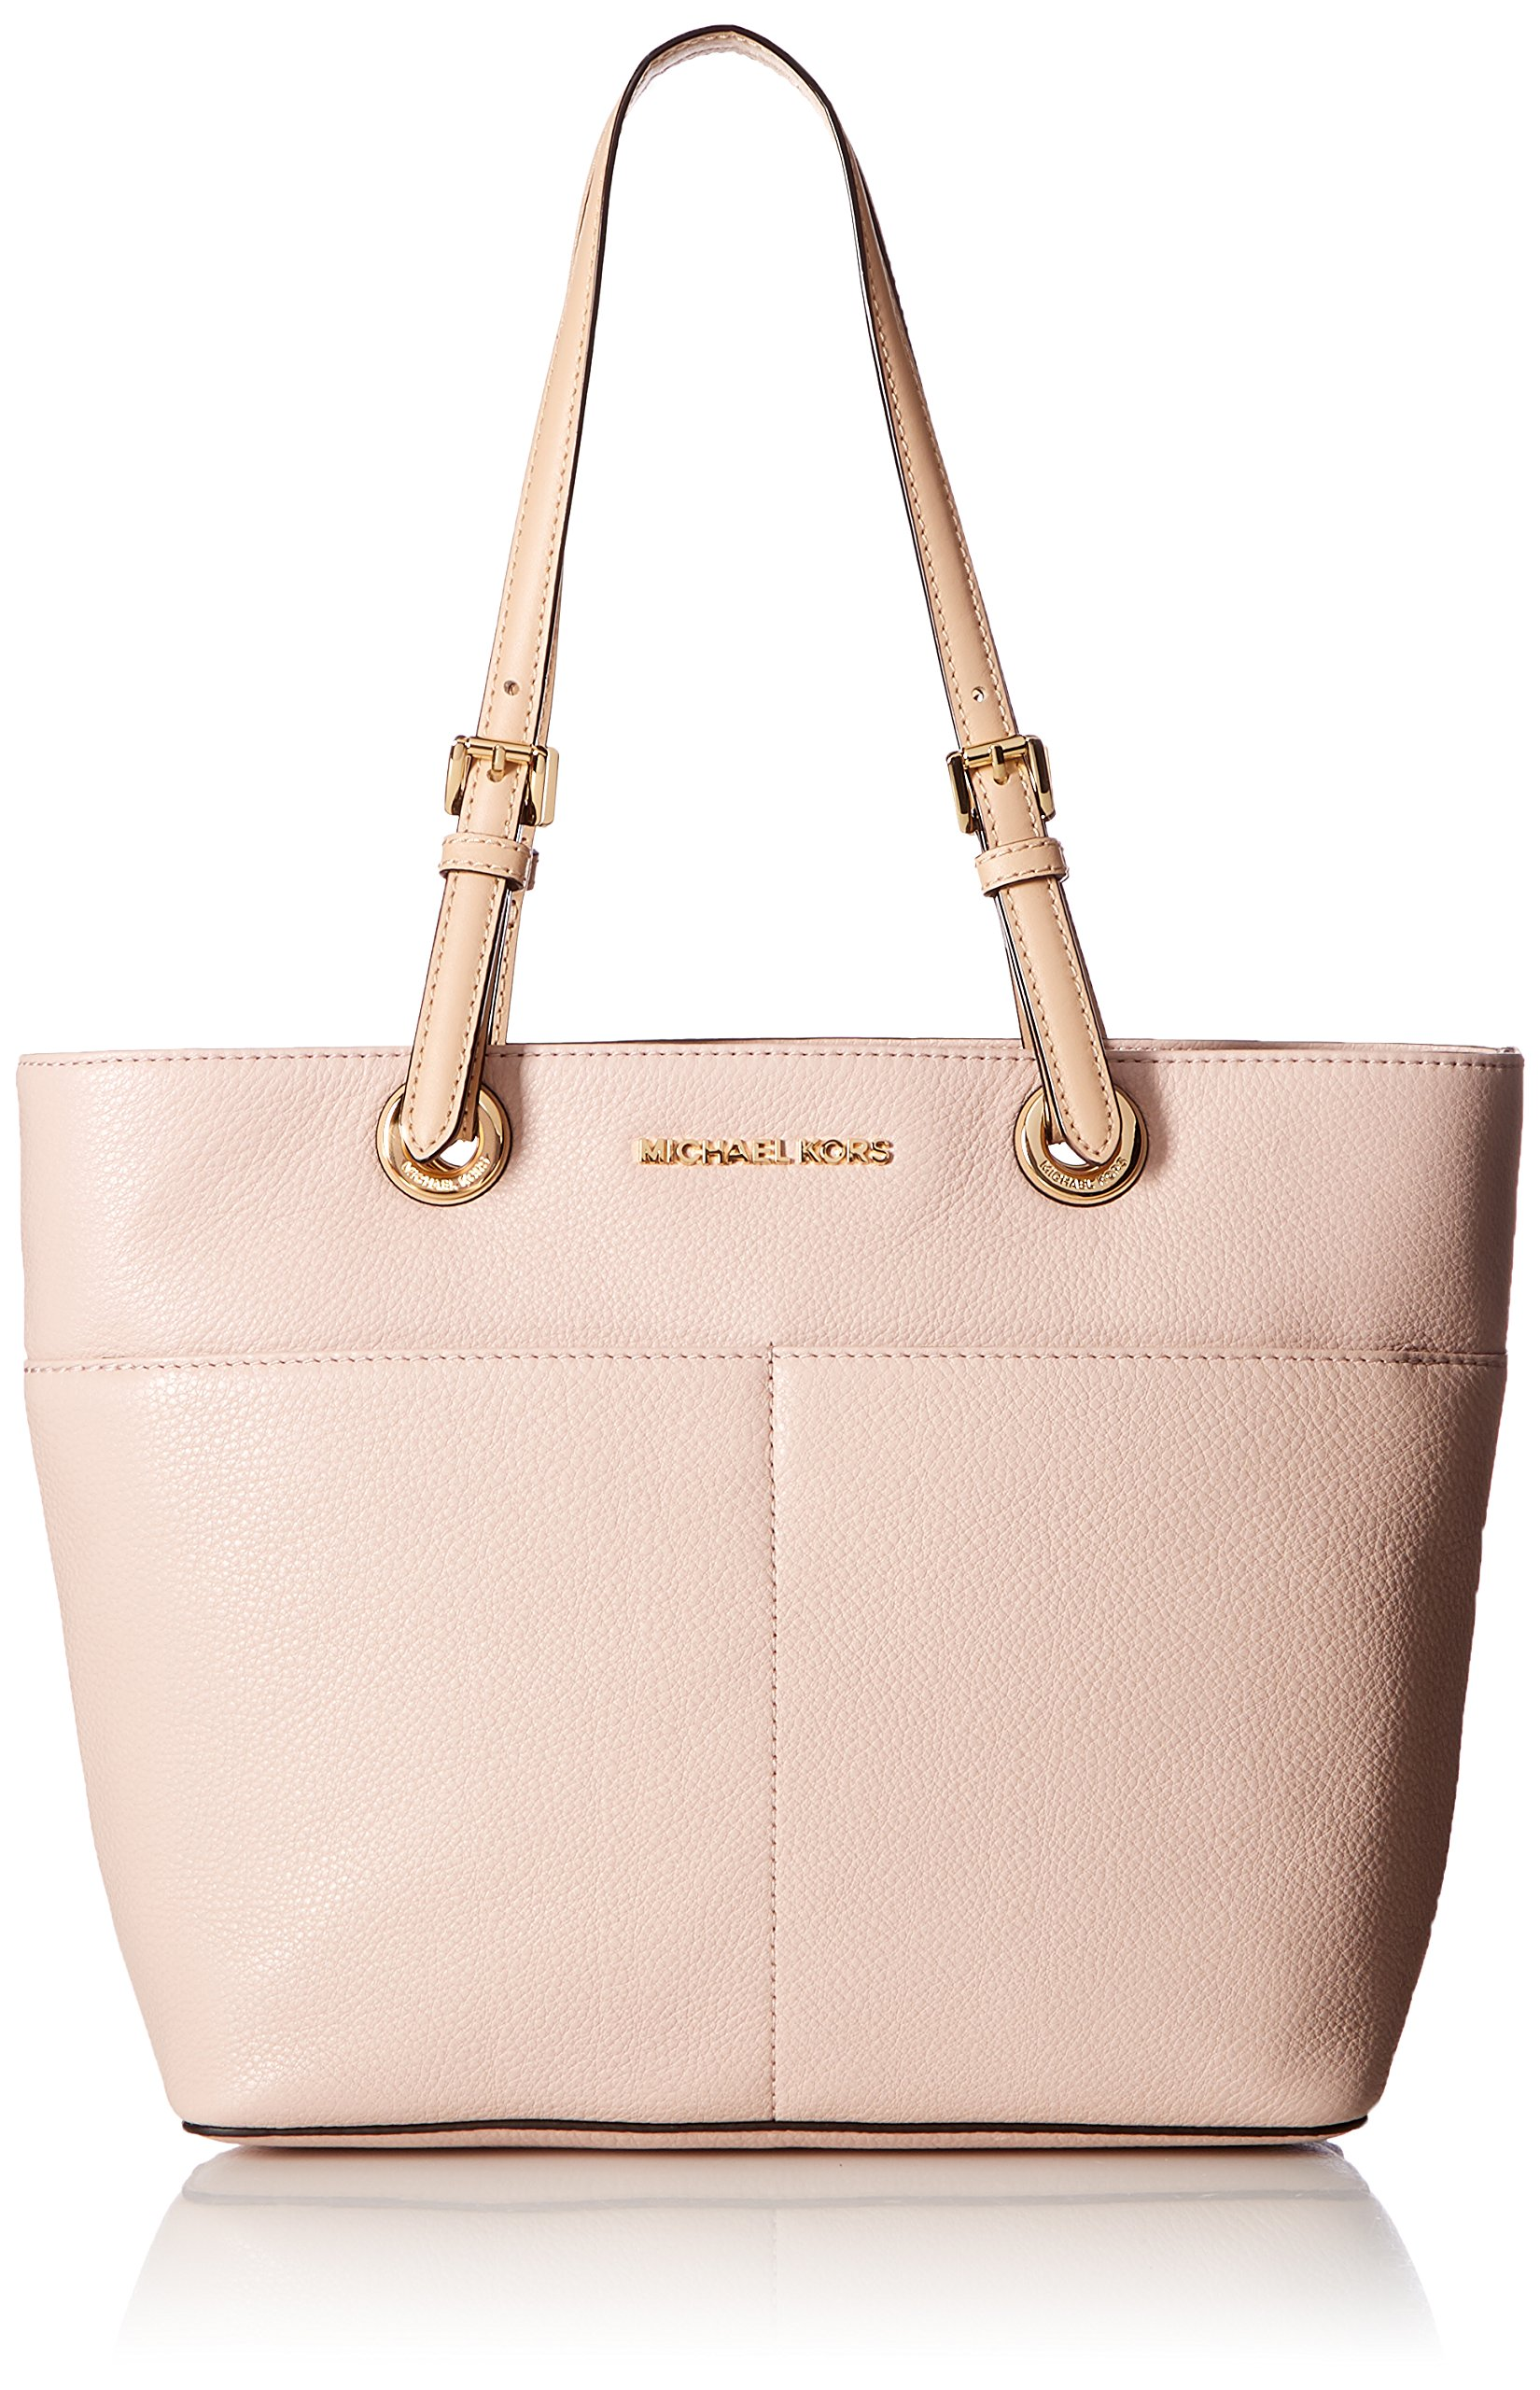 michael kors designer handbags amazon com rh amazon com